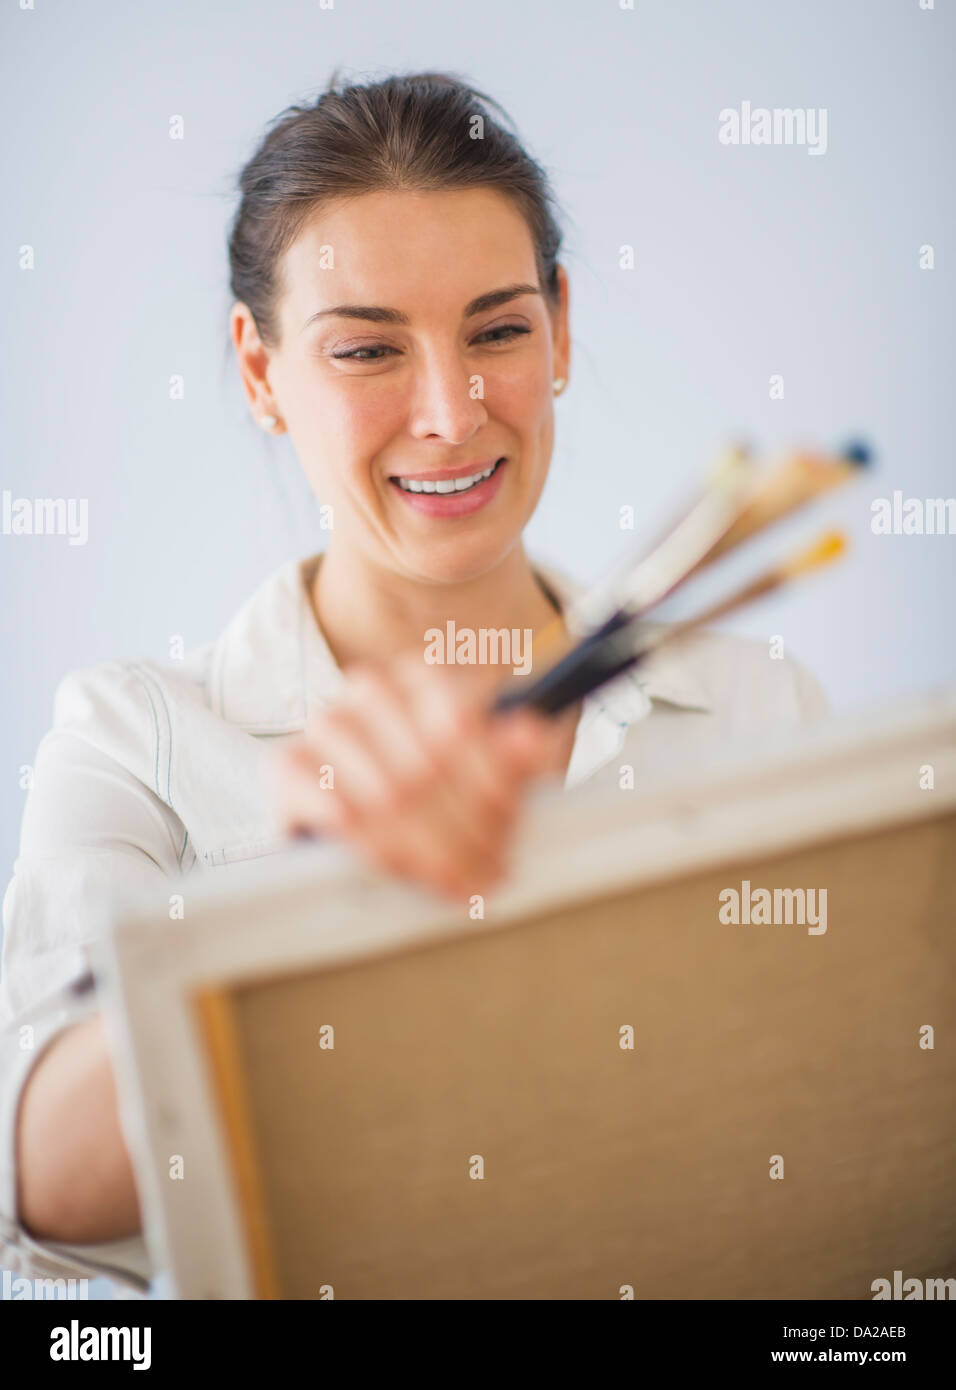 Studio Shot of woman holding paintbrushes and artist's canvas - Stock Image